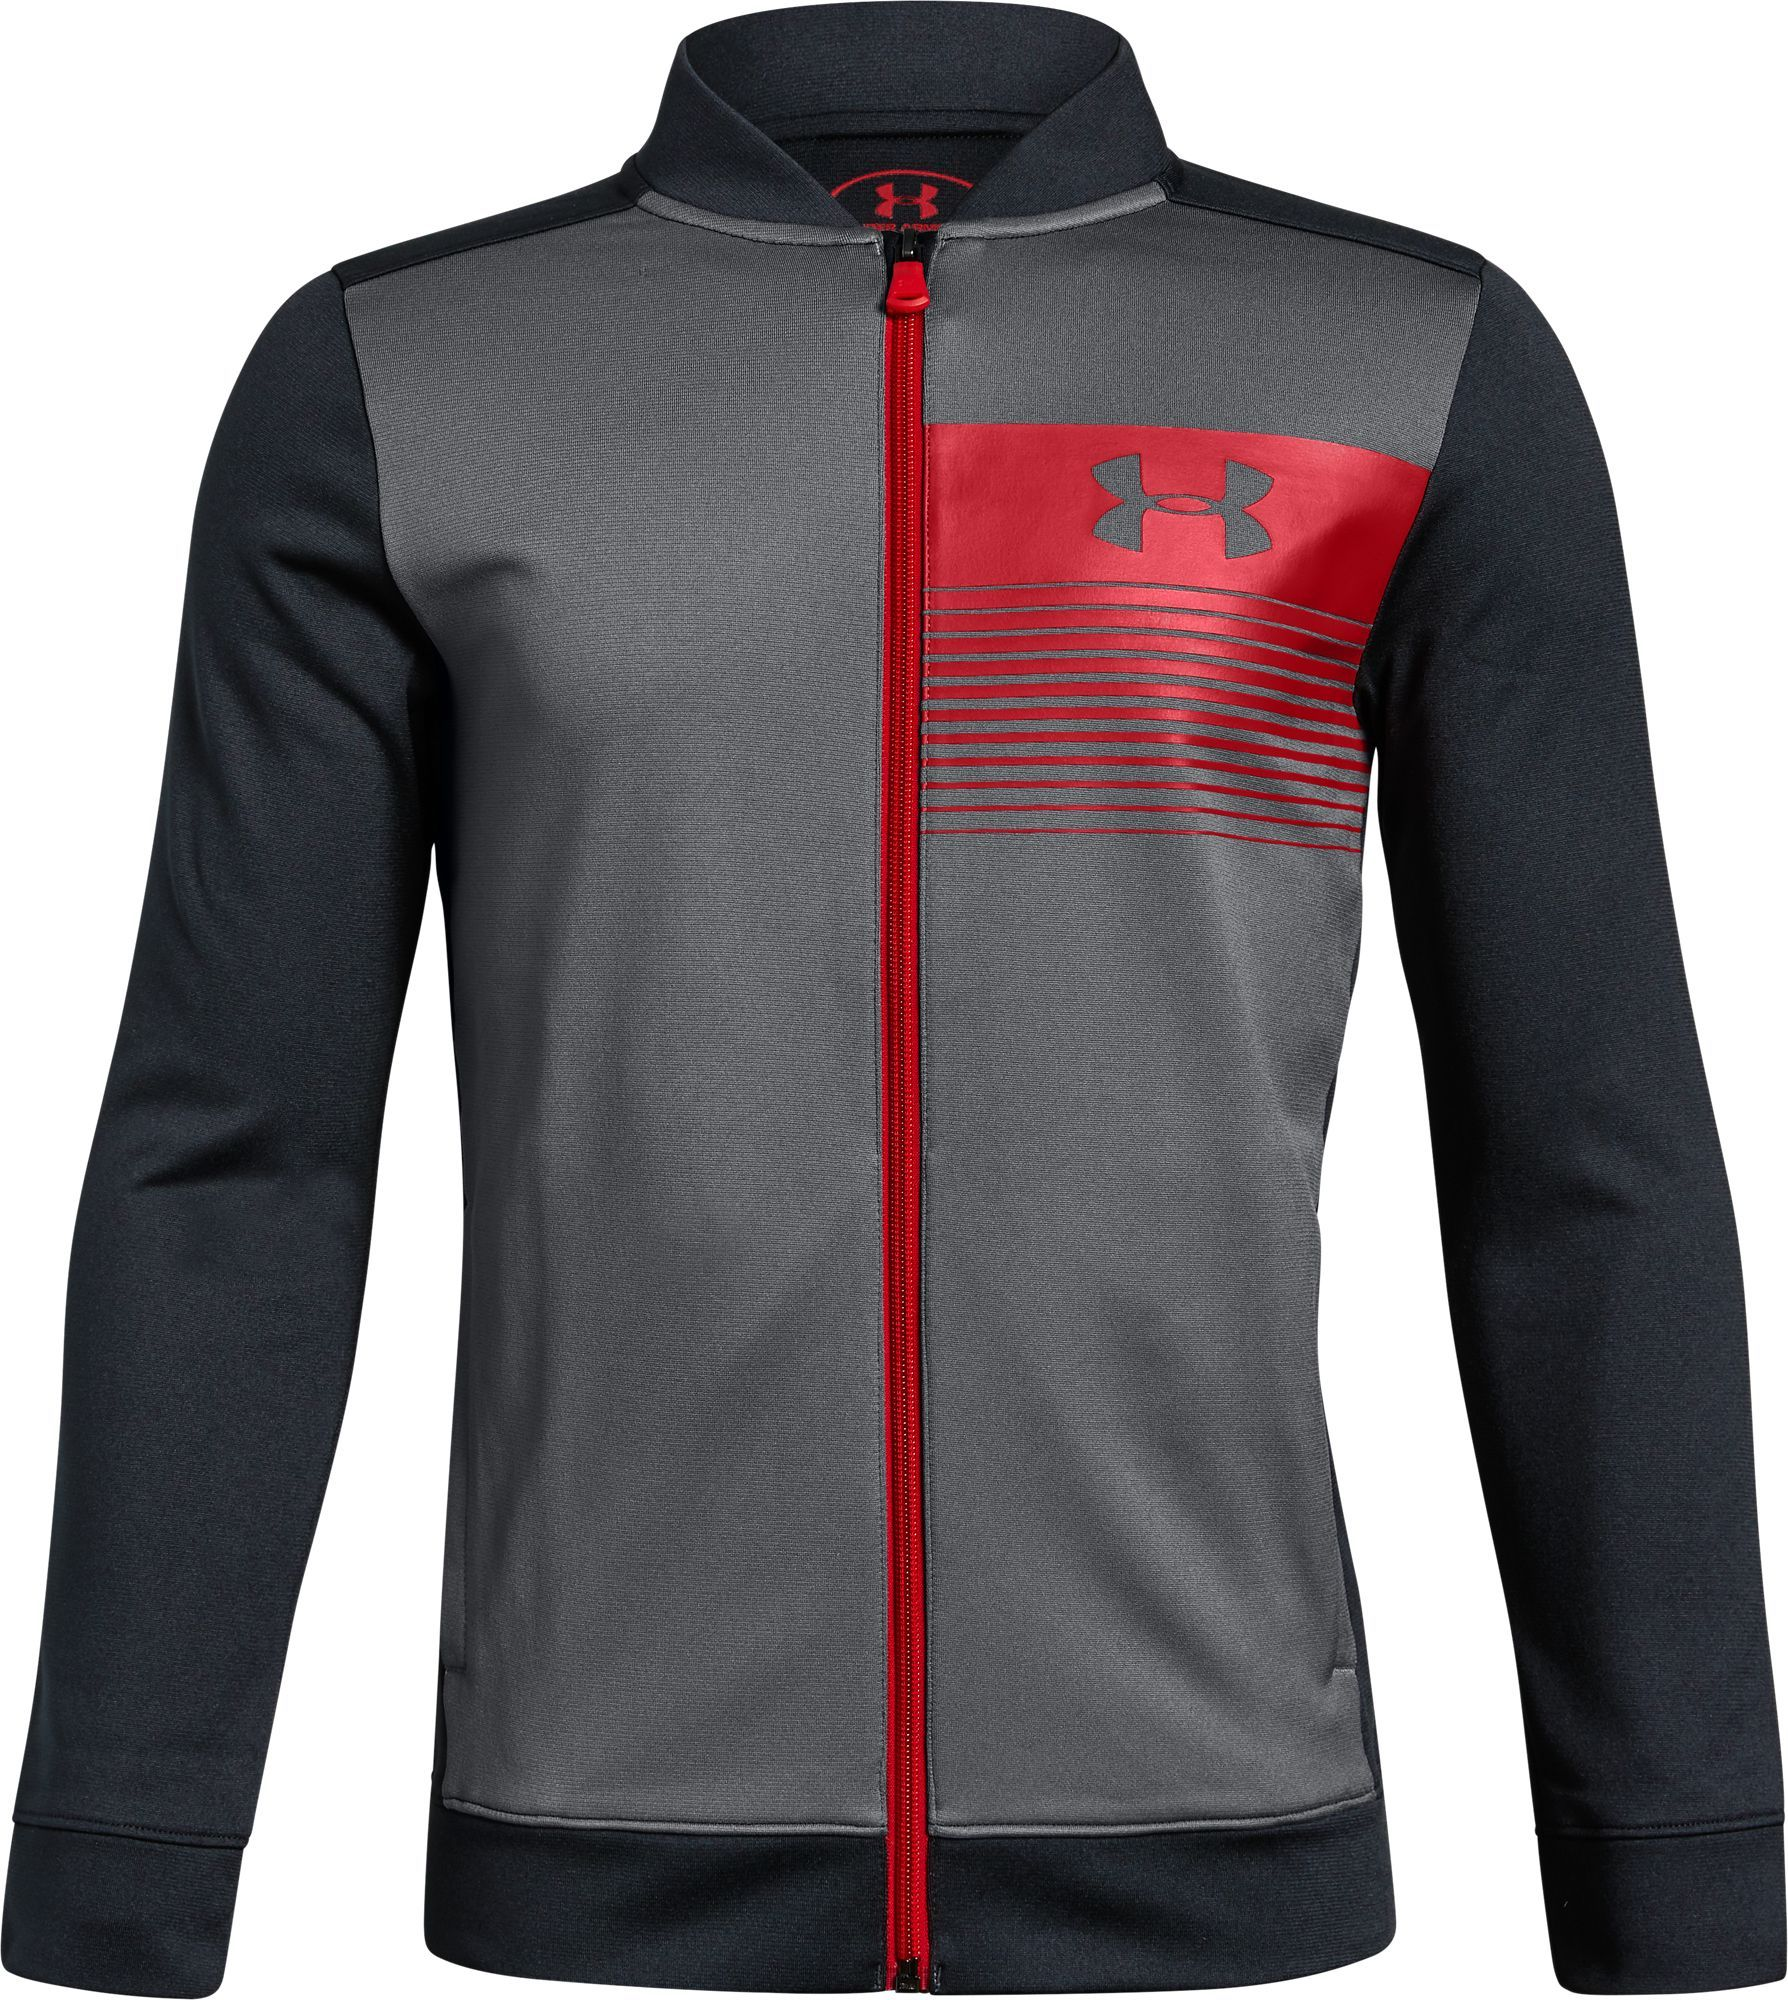 Under Armour Boys Pennant Warm-up Jacket